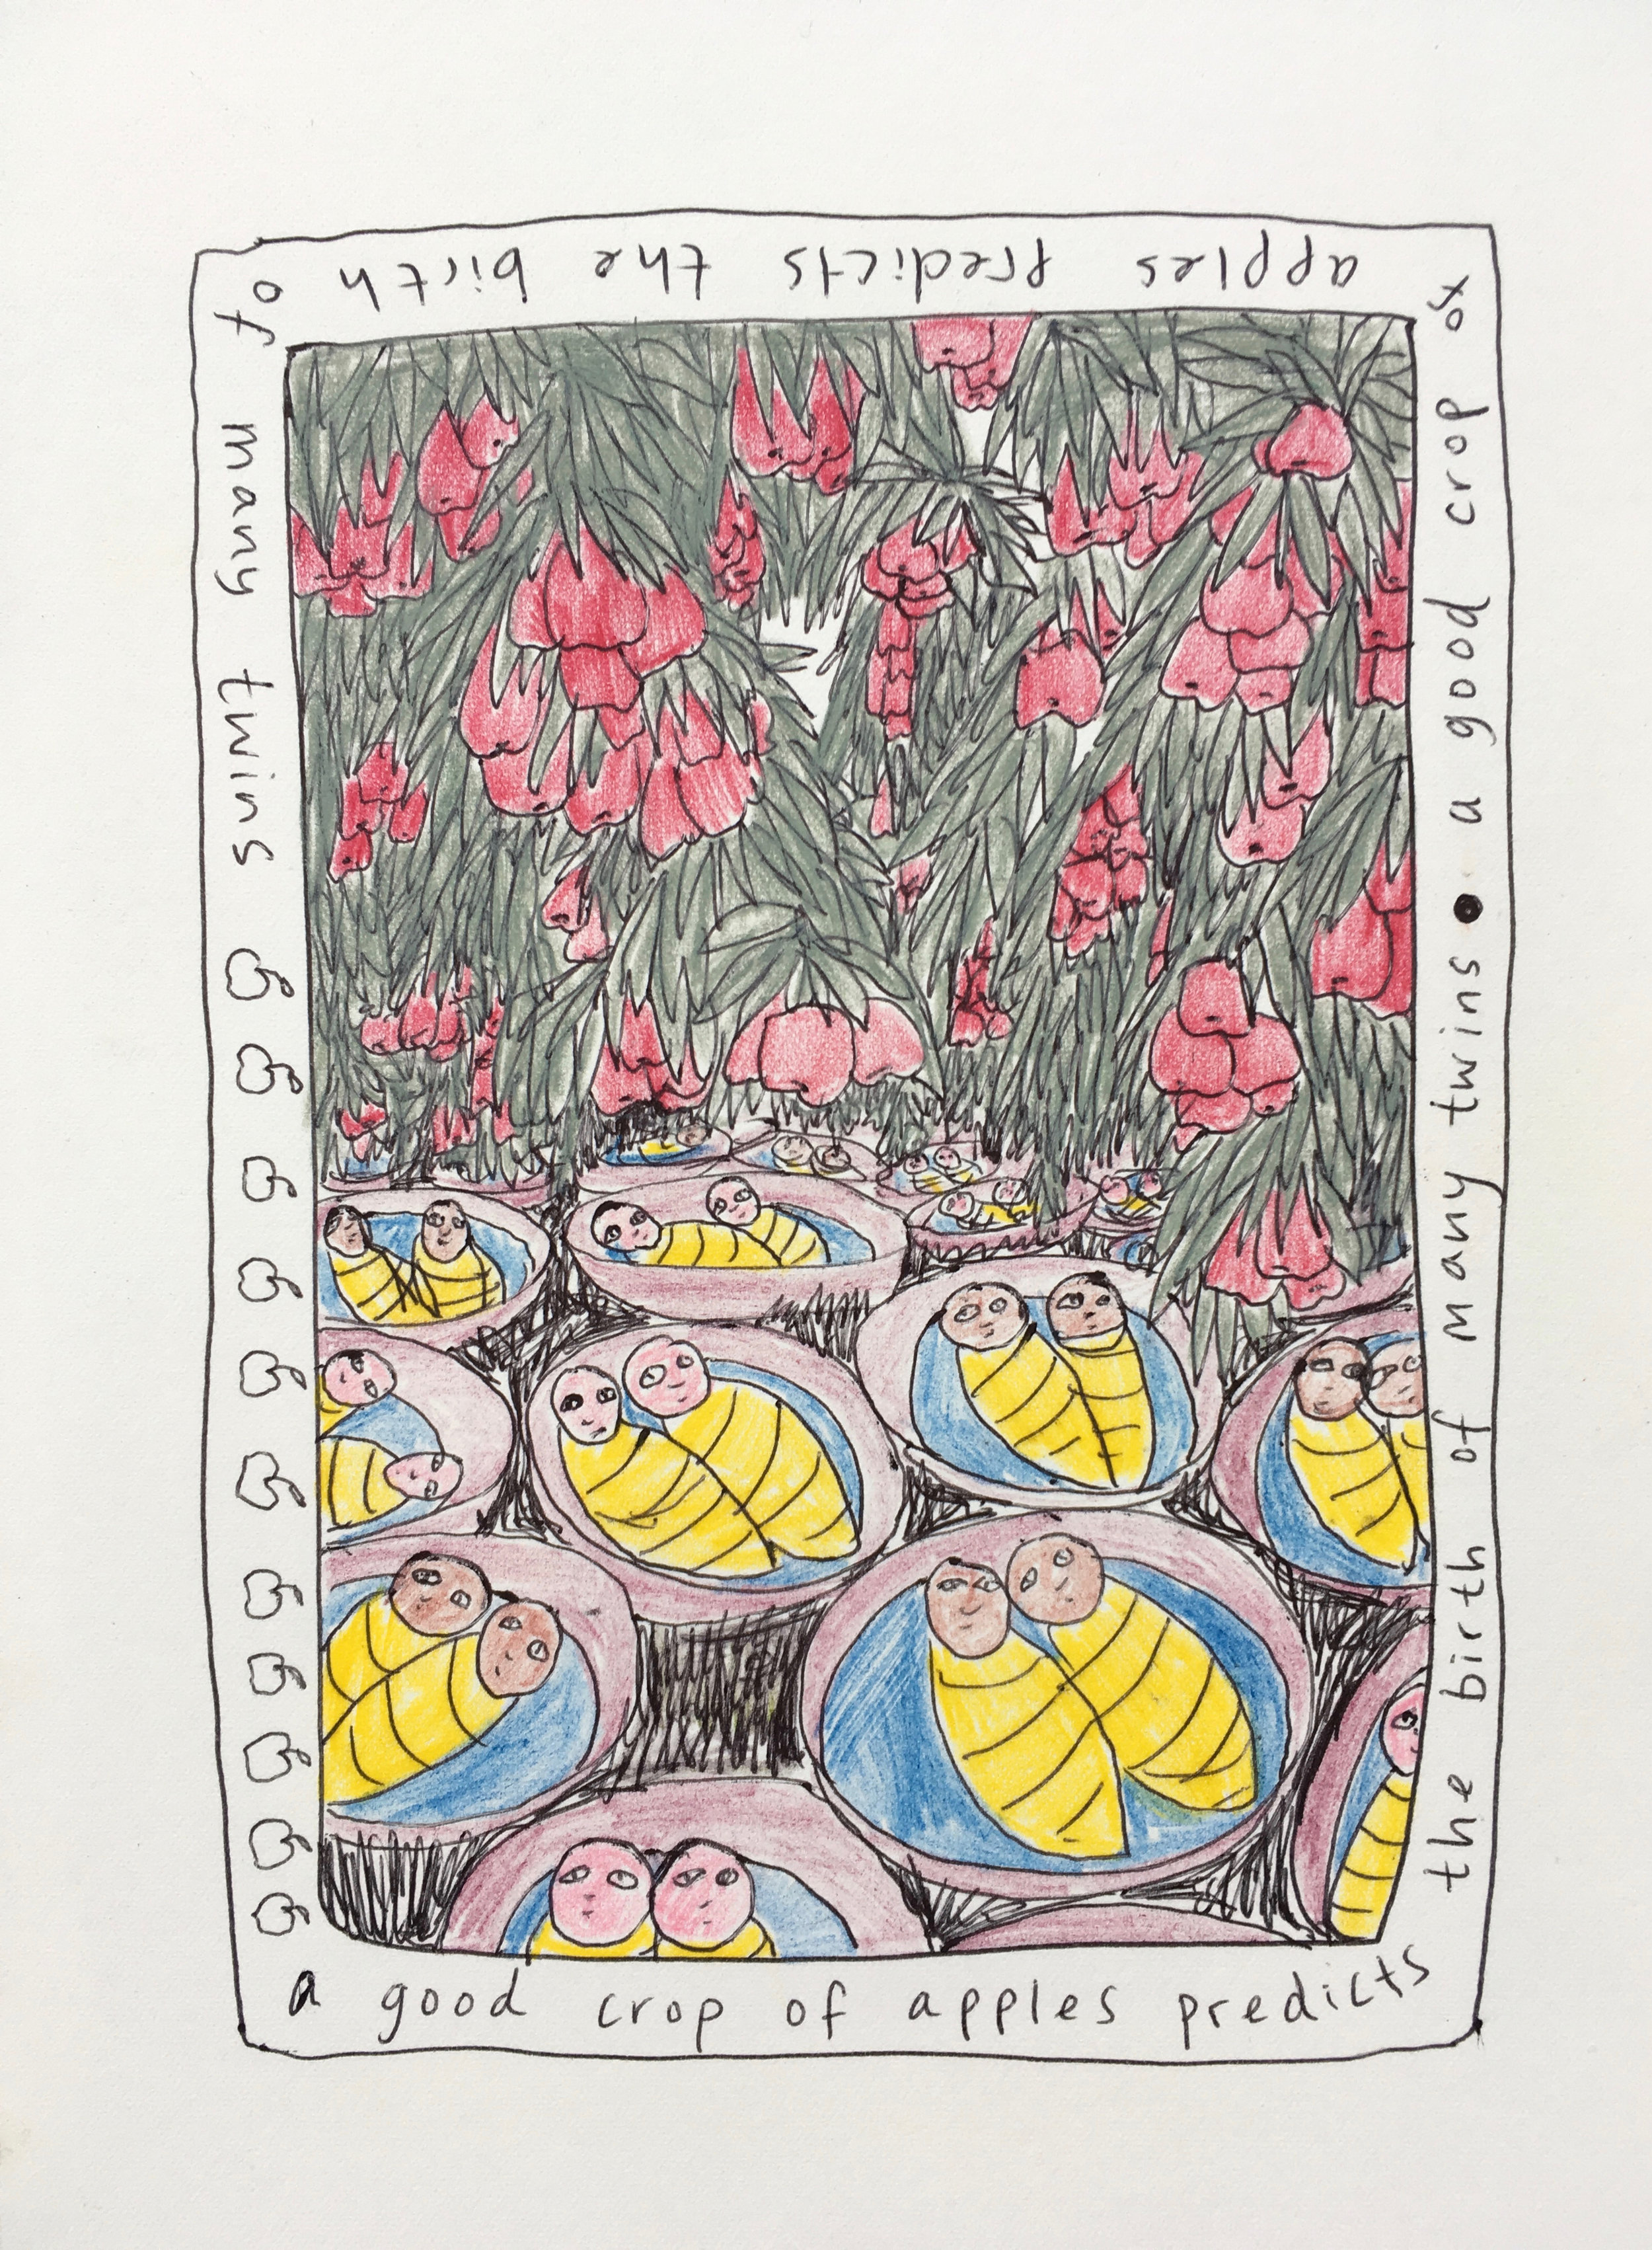 A good crop of apples predicts the birth of many twins, Plant Tales Series (Prints available).